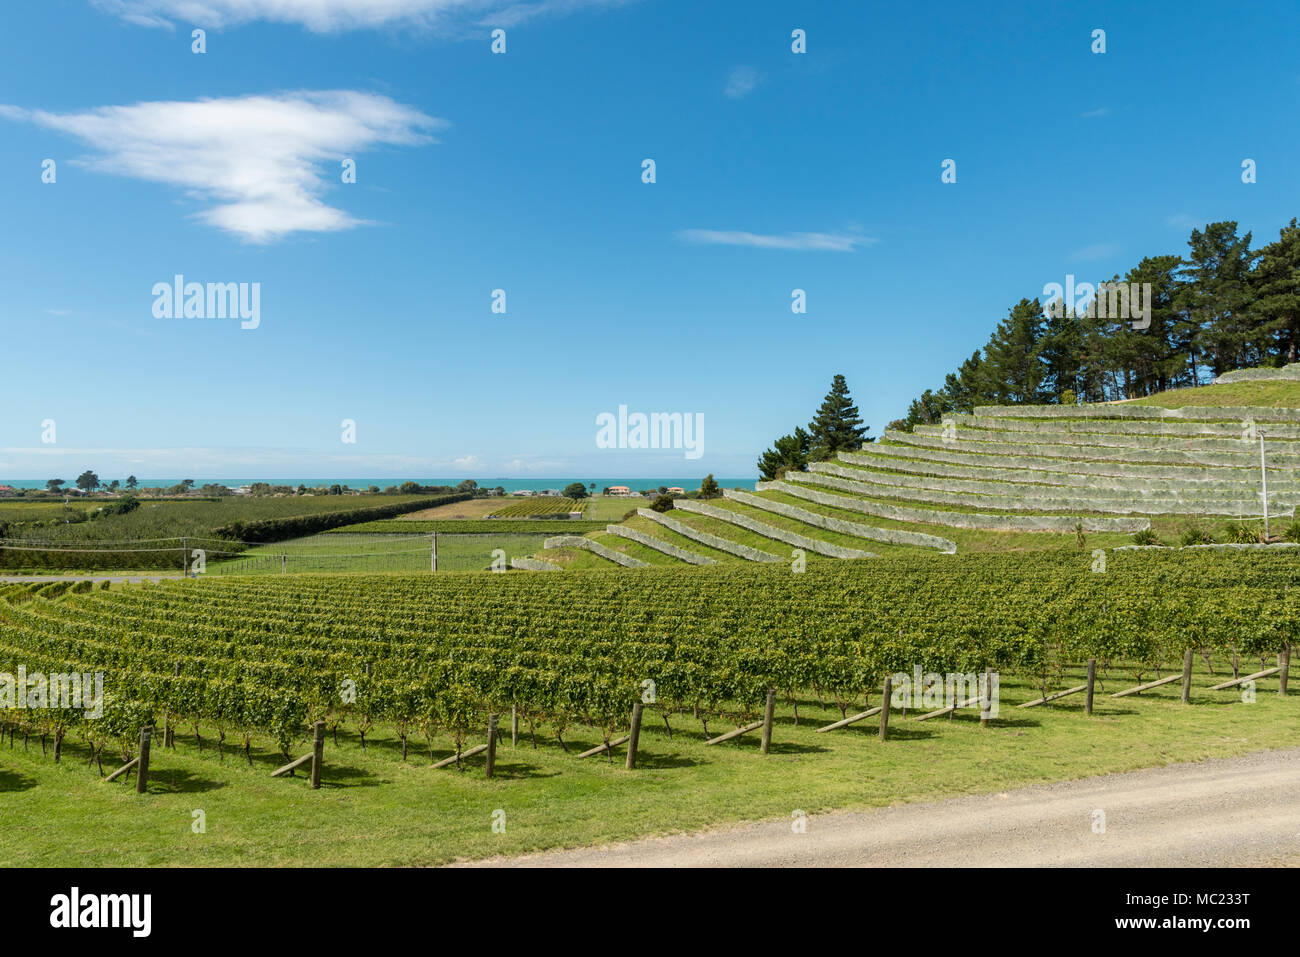 Terraced vineyards at the Esk Valley vineyard, Hawkes Bay, New Zealand, new world wine production Stock Photo